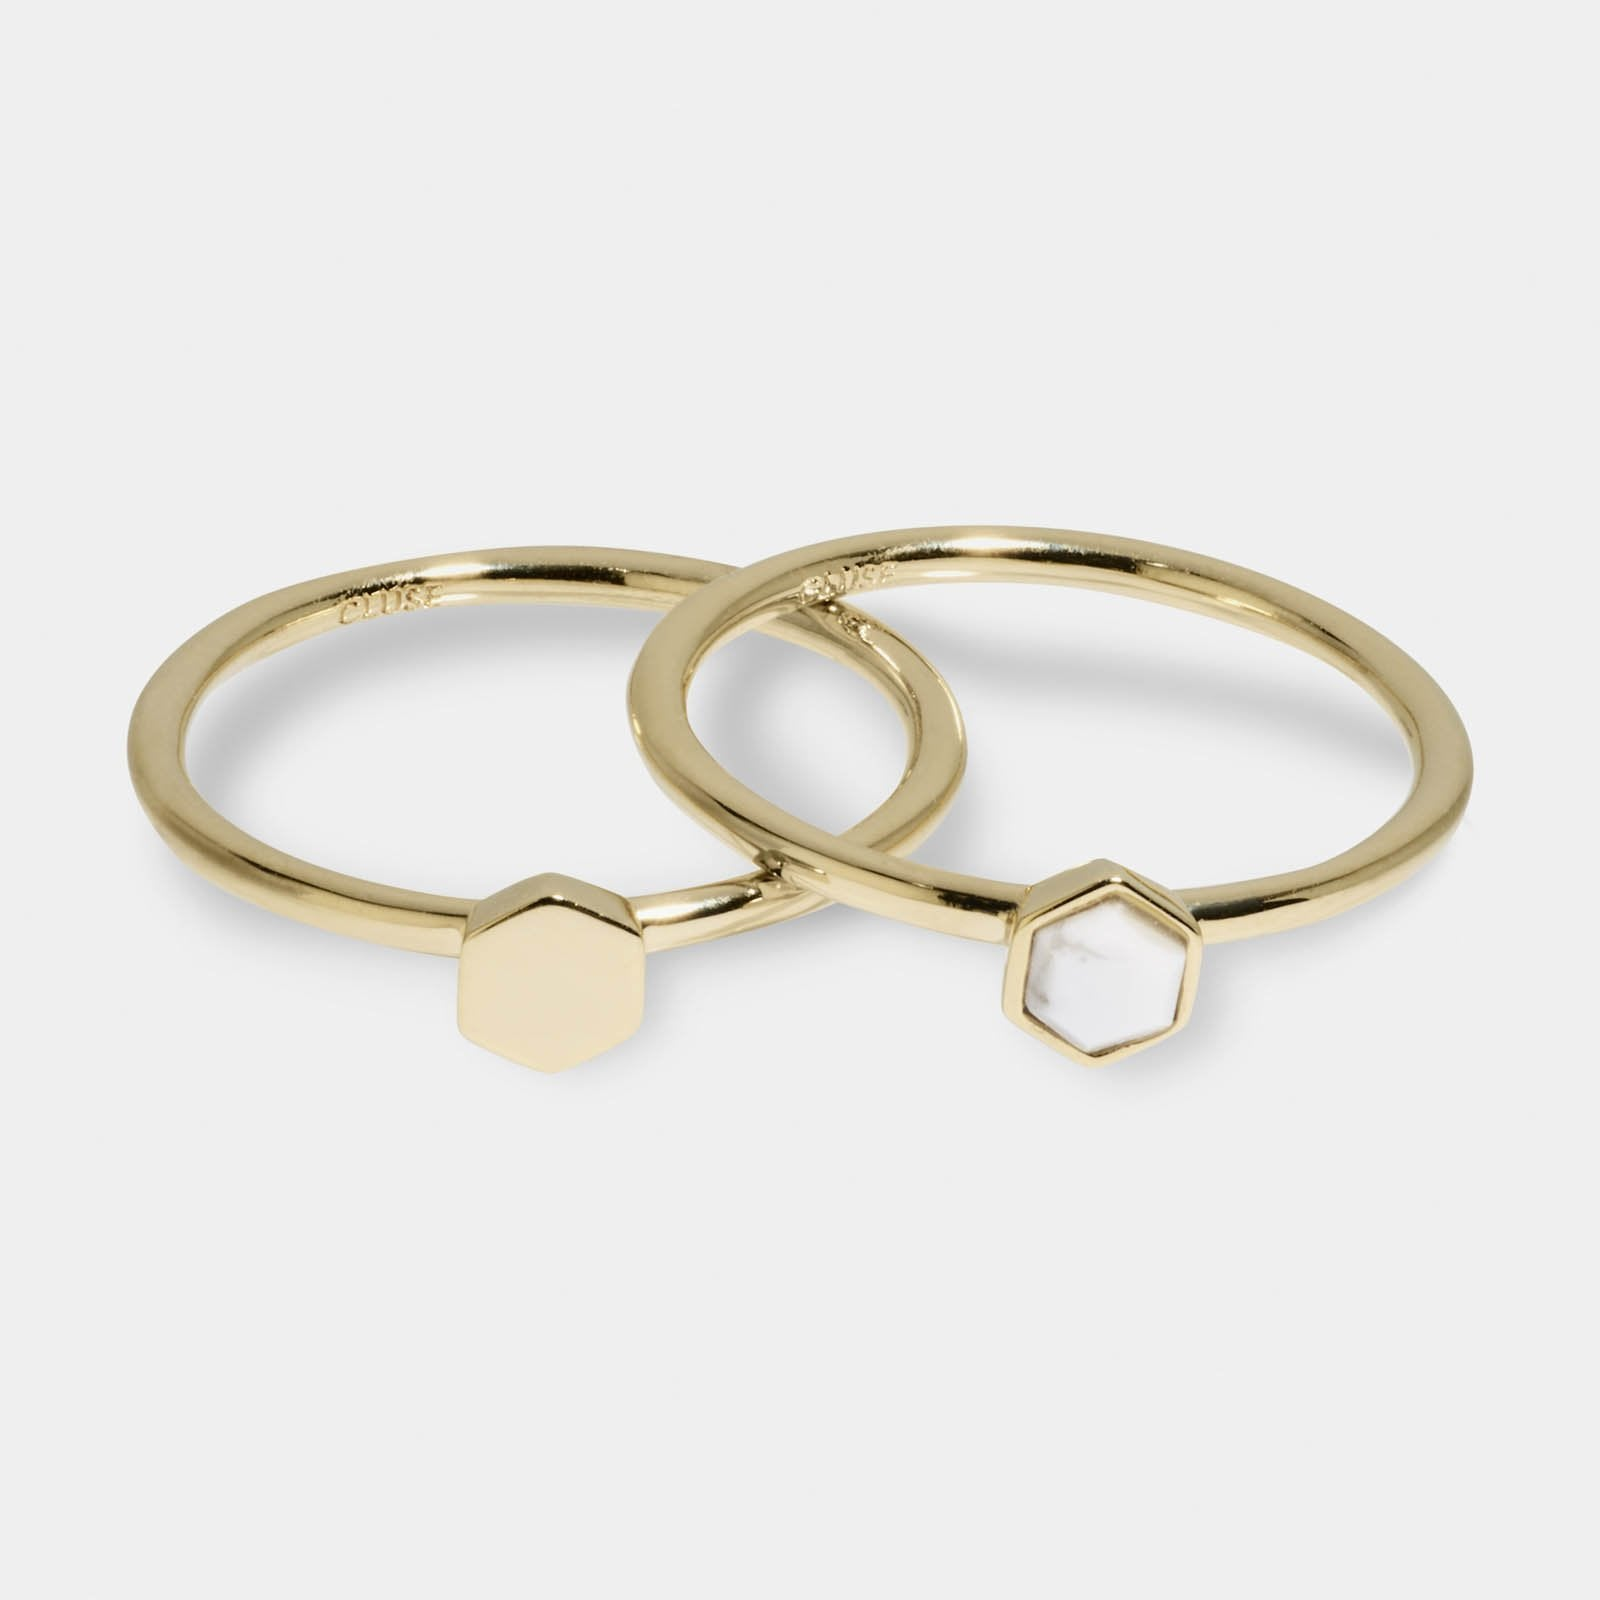 CLUSE Idylle Gold Solid And Marble Hexagon Ring Set-54  CLJ41001-54 - Set di anelli taglia 54